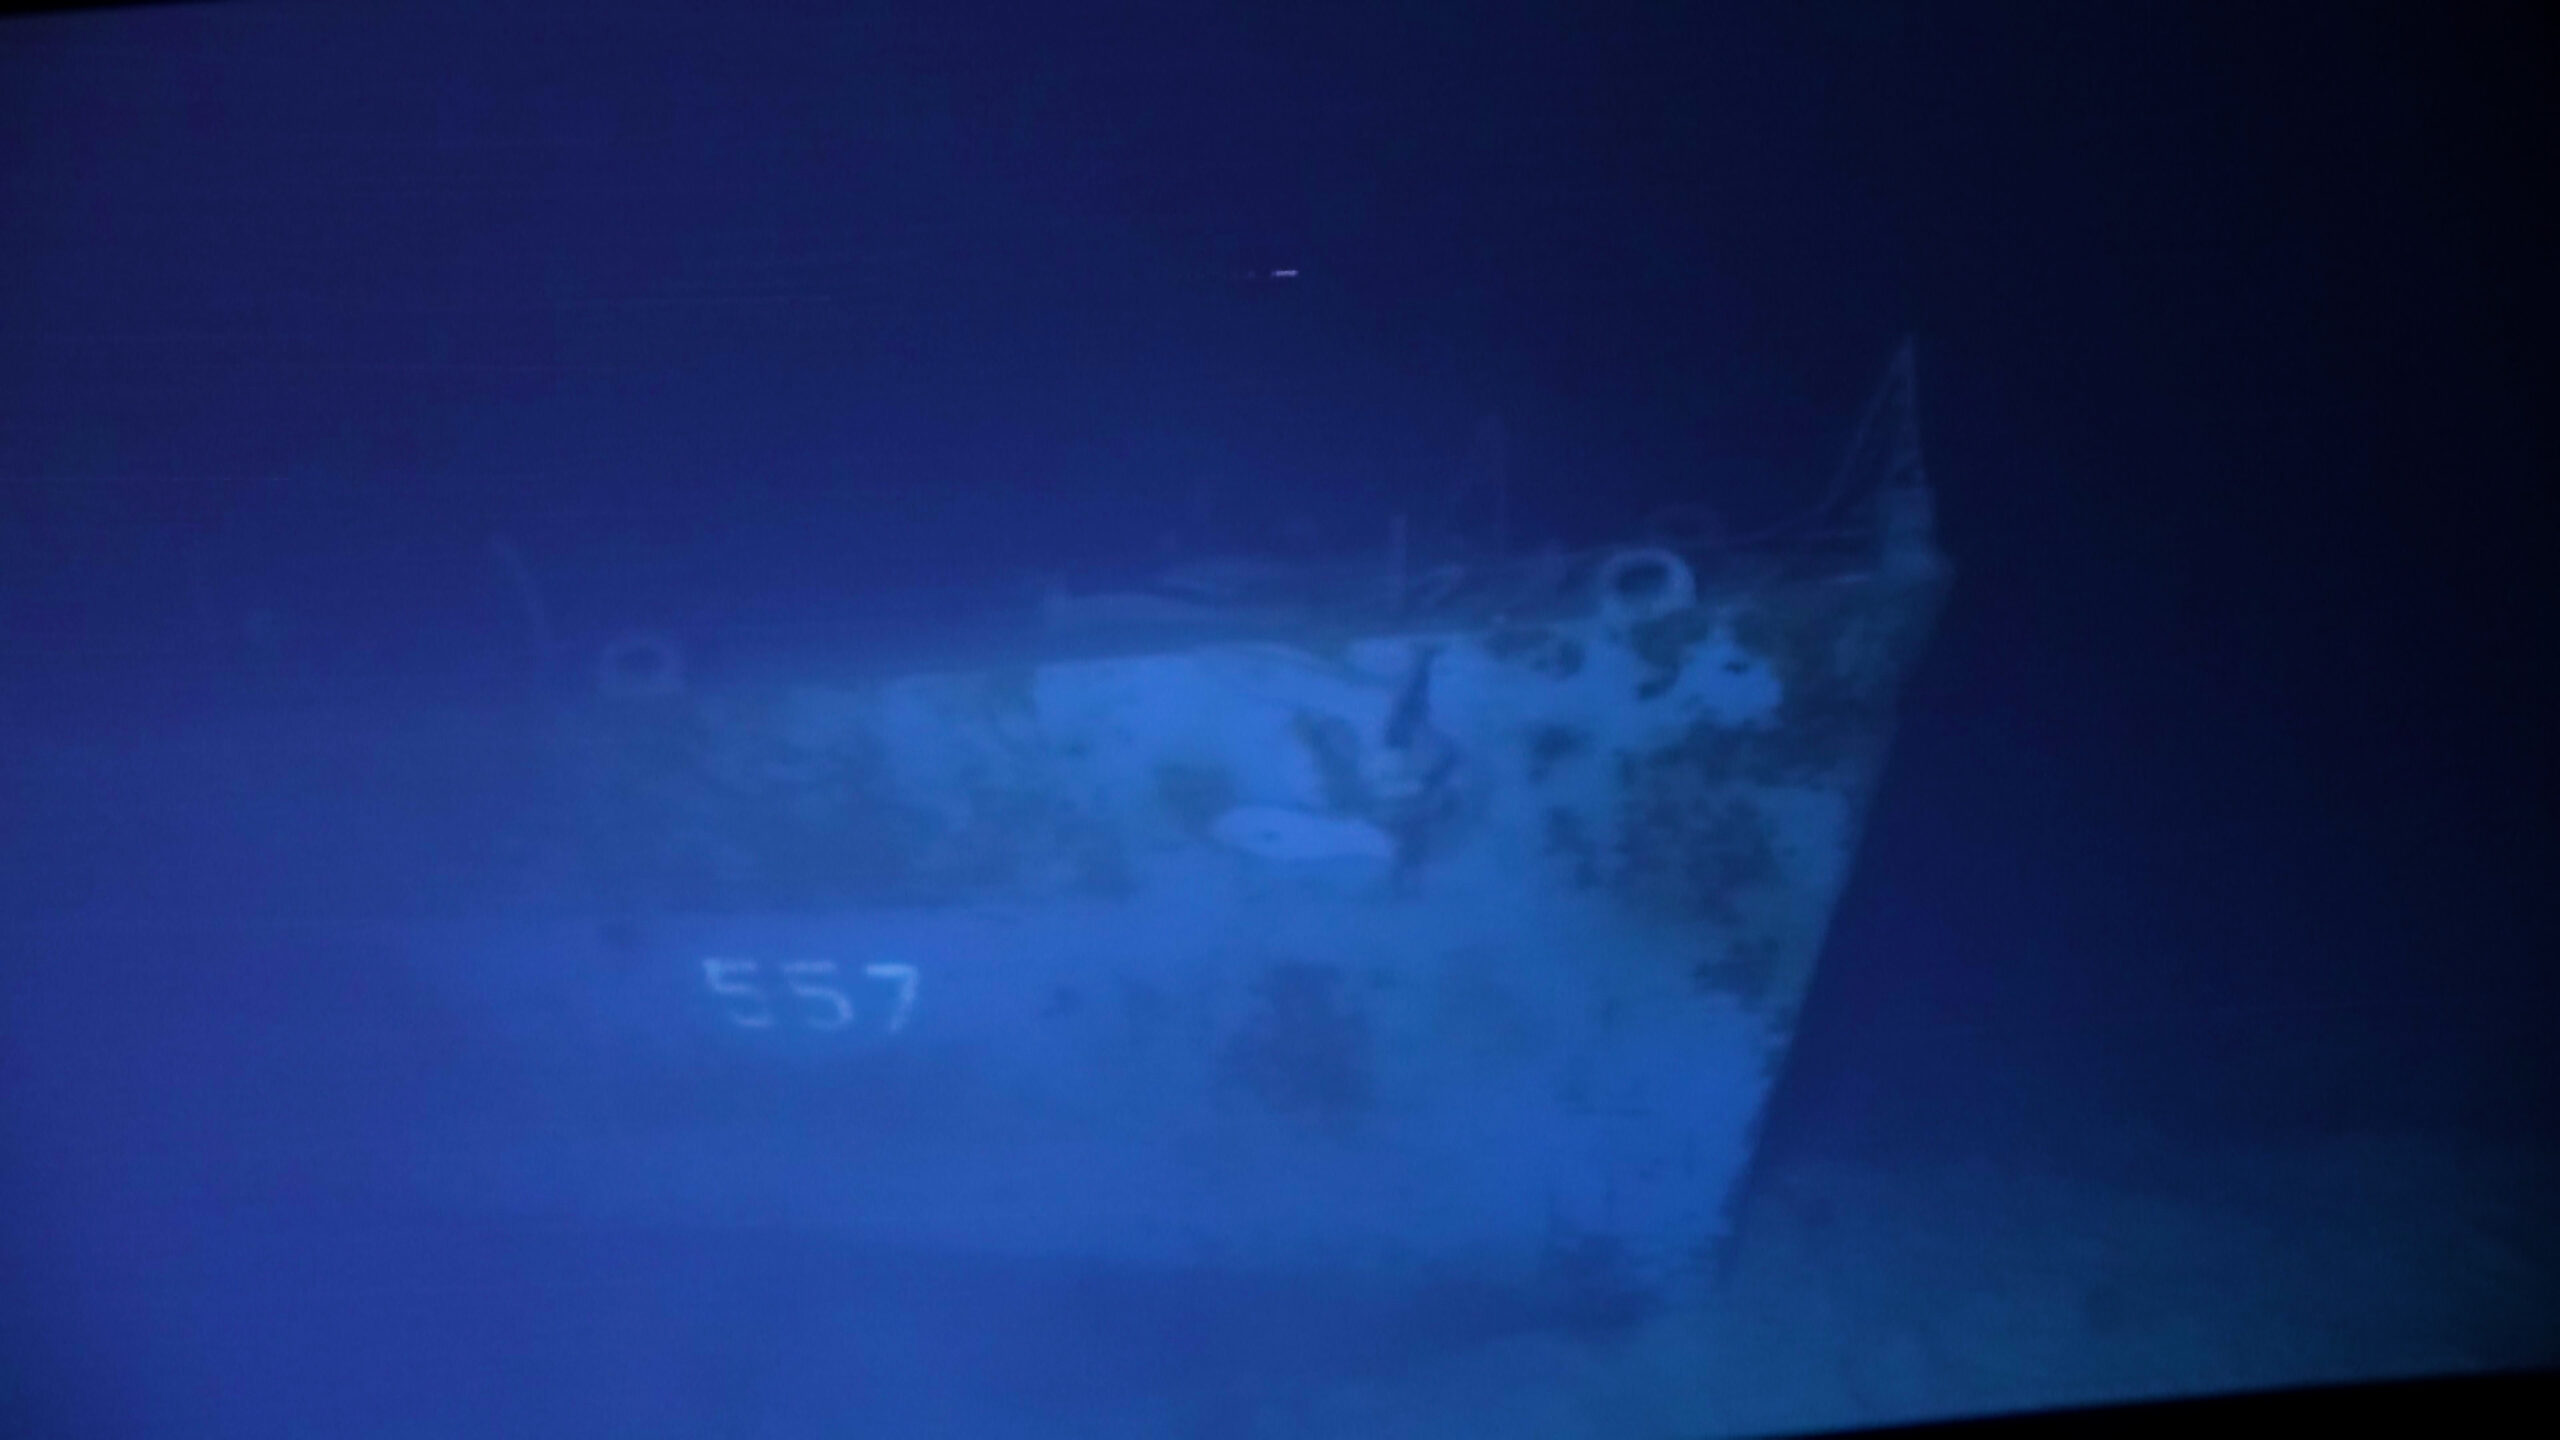 This hero WWII destroyer was reached in the world's deepest shipwreck dive